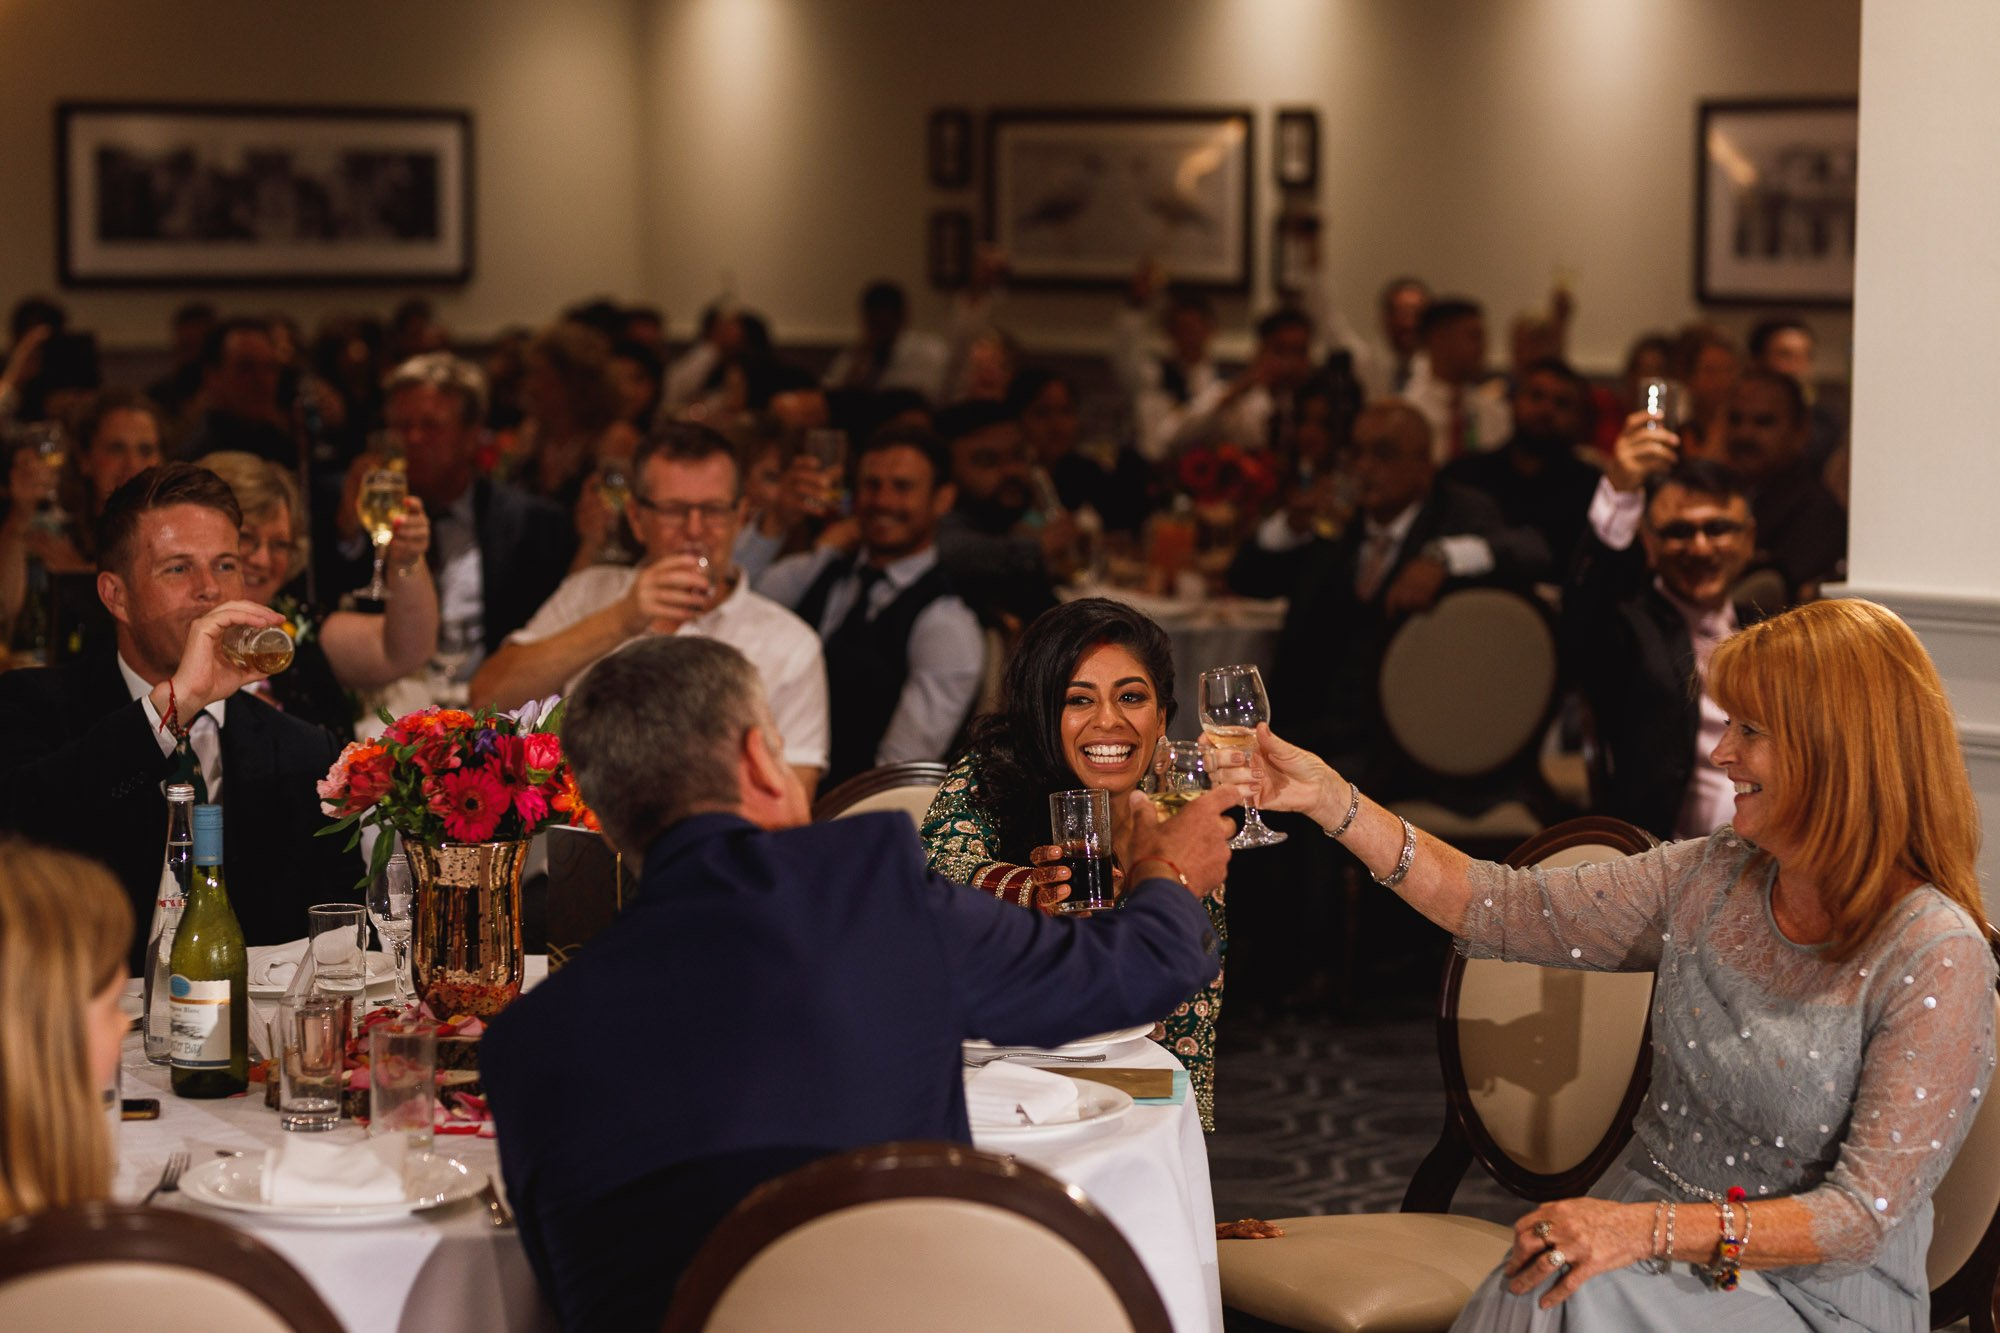 De Vere Wokefield Estate, Asian wedding photographer, reception, speech reactions